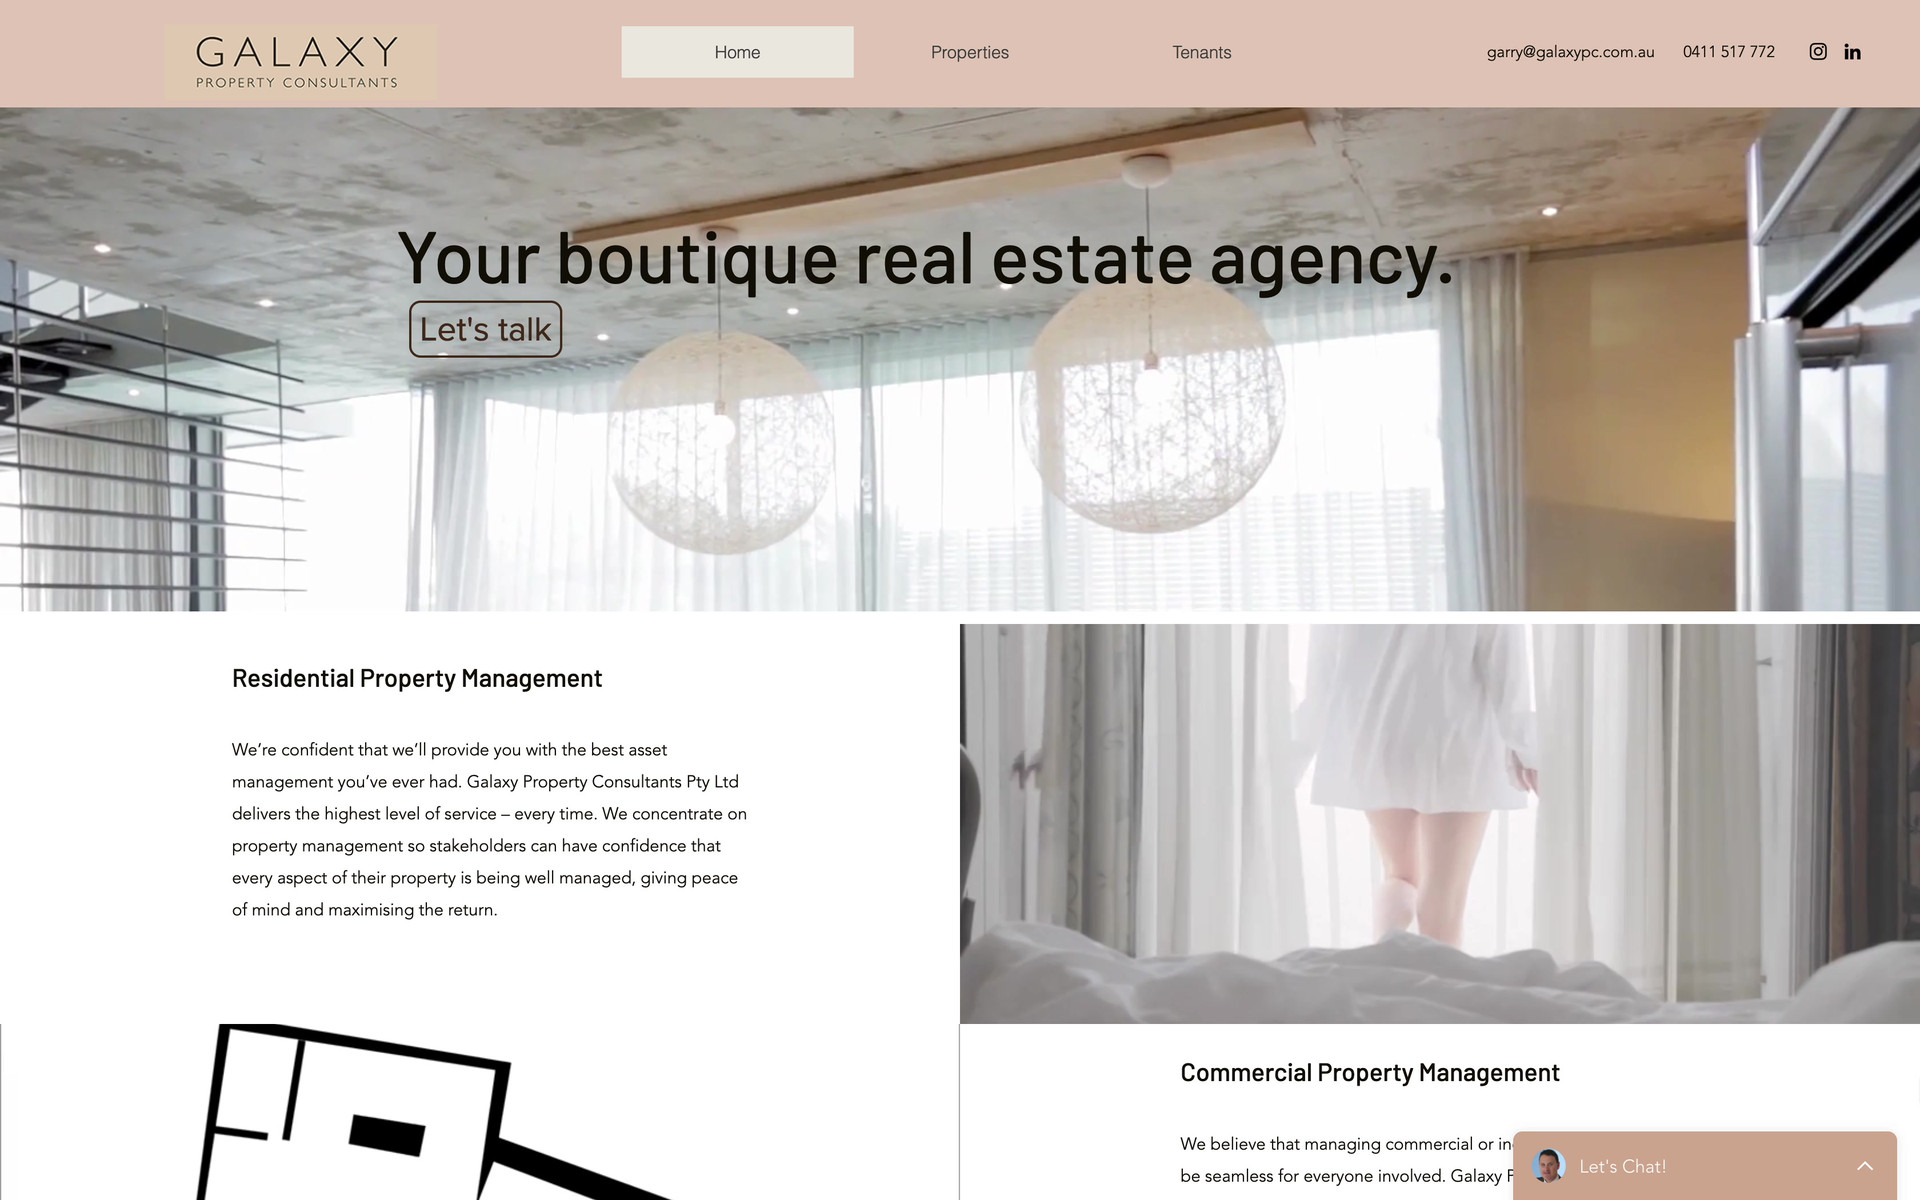 Galaxy Property Consultants